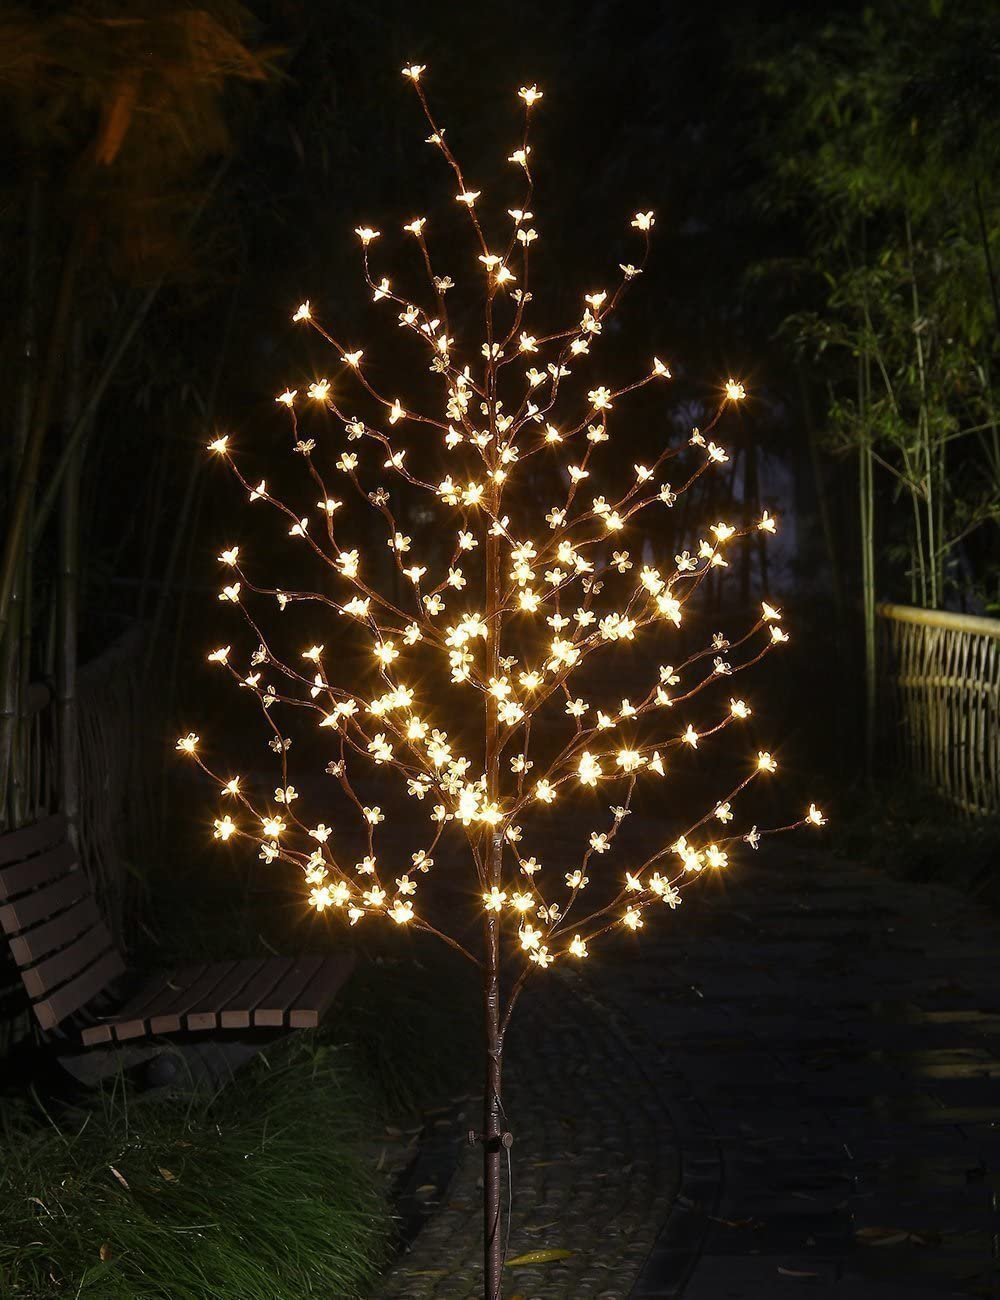 Lightshare 6 5 Feet 208l Led Lighted Cherry Blossom Tree Warm White Decorate Home Garden Summer Wedding Birthday Christmas Holiday Party For Indoor And Outdoor Use Home Kitchen